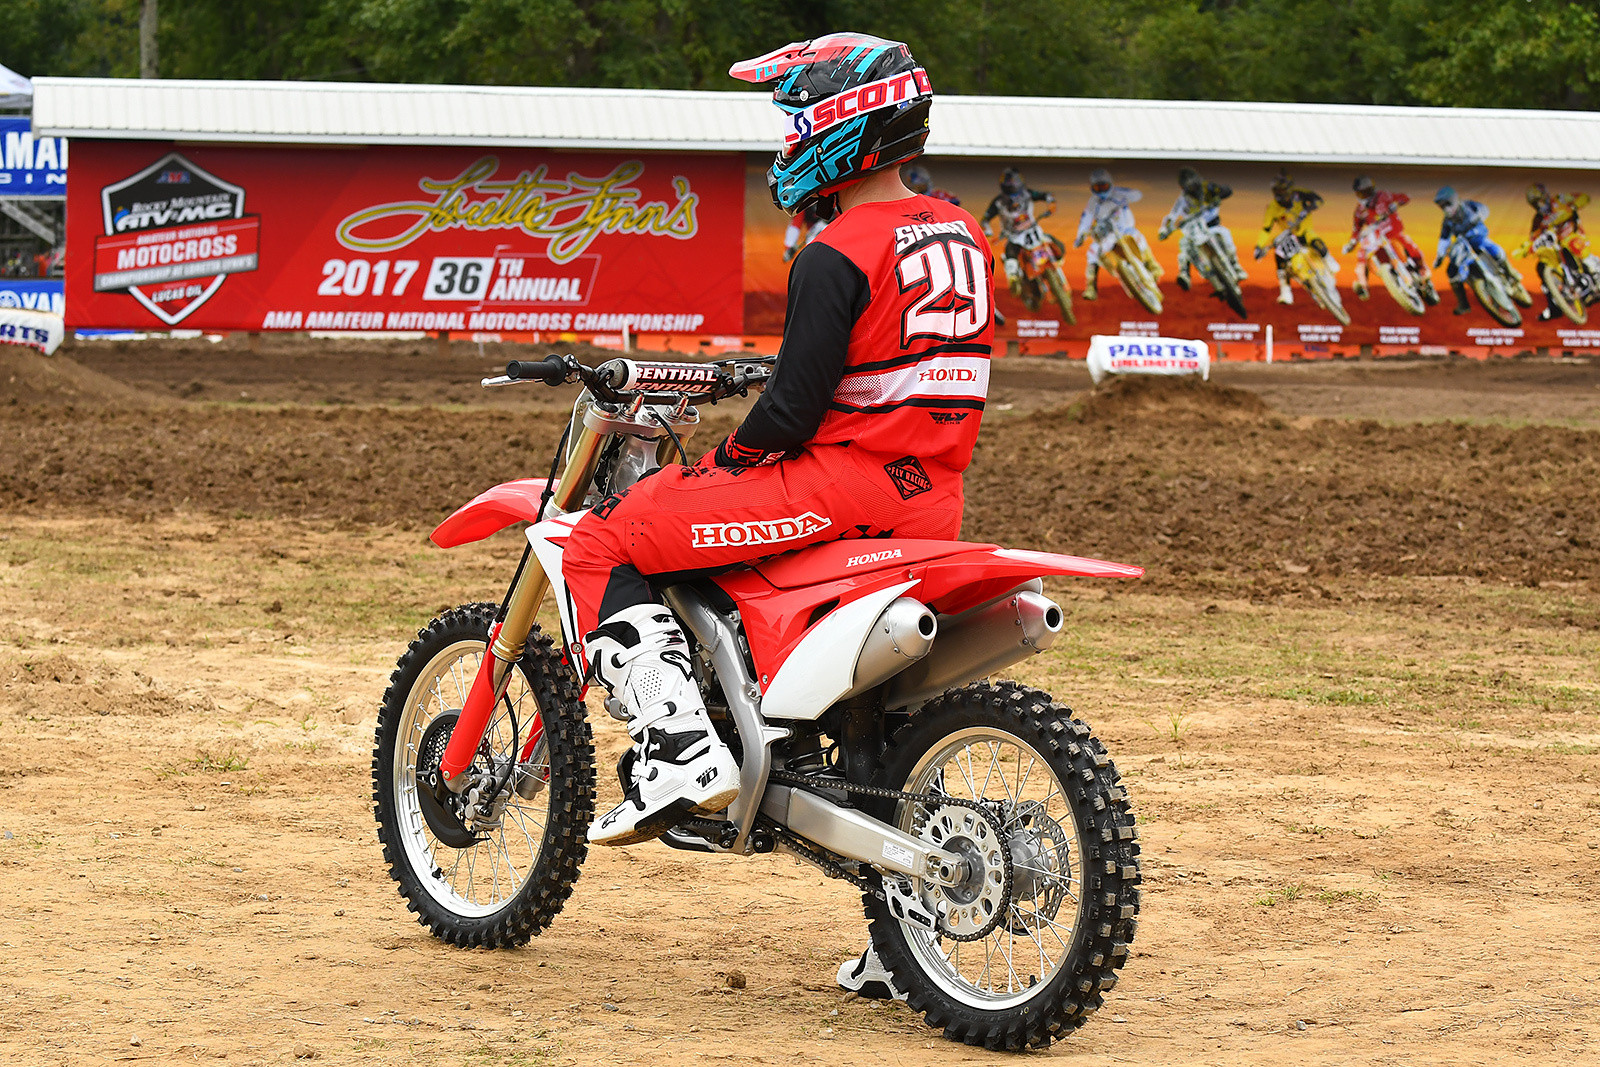 Team Honda hero Andrew Short gets ready to take a spin on the all-new 2018 Honda CRF250R at Loretta Lynn's.